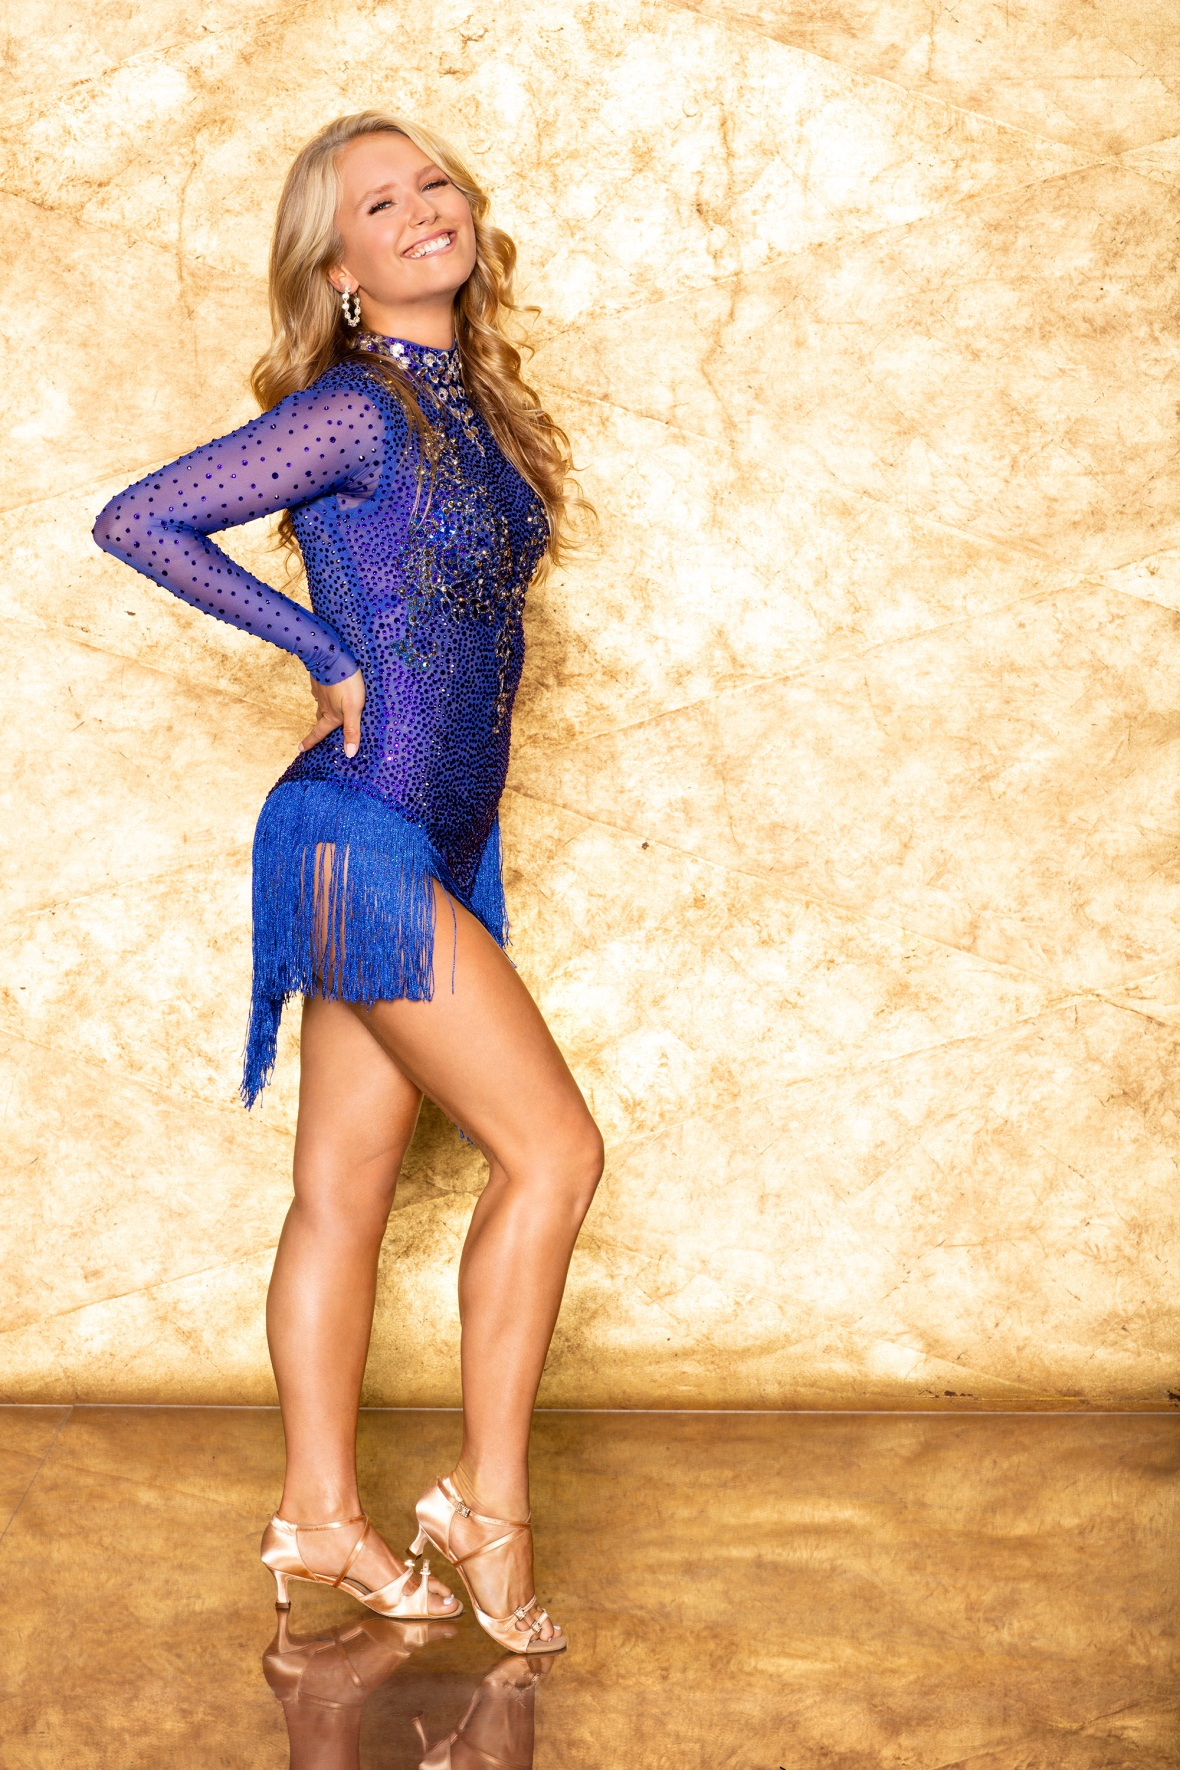 Sailor Brinkley Cook in a Promo Photo for 'Dancing With the Stars' Season 28